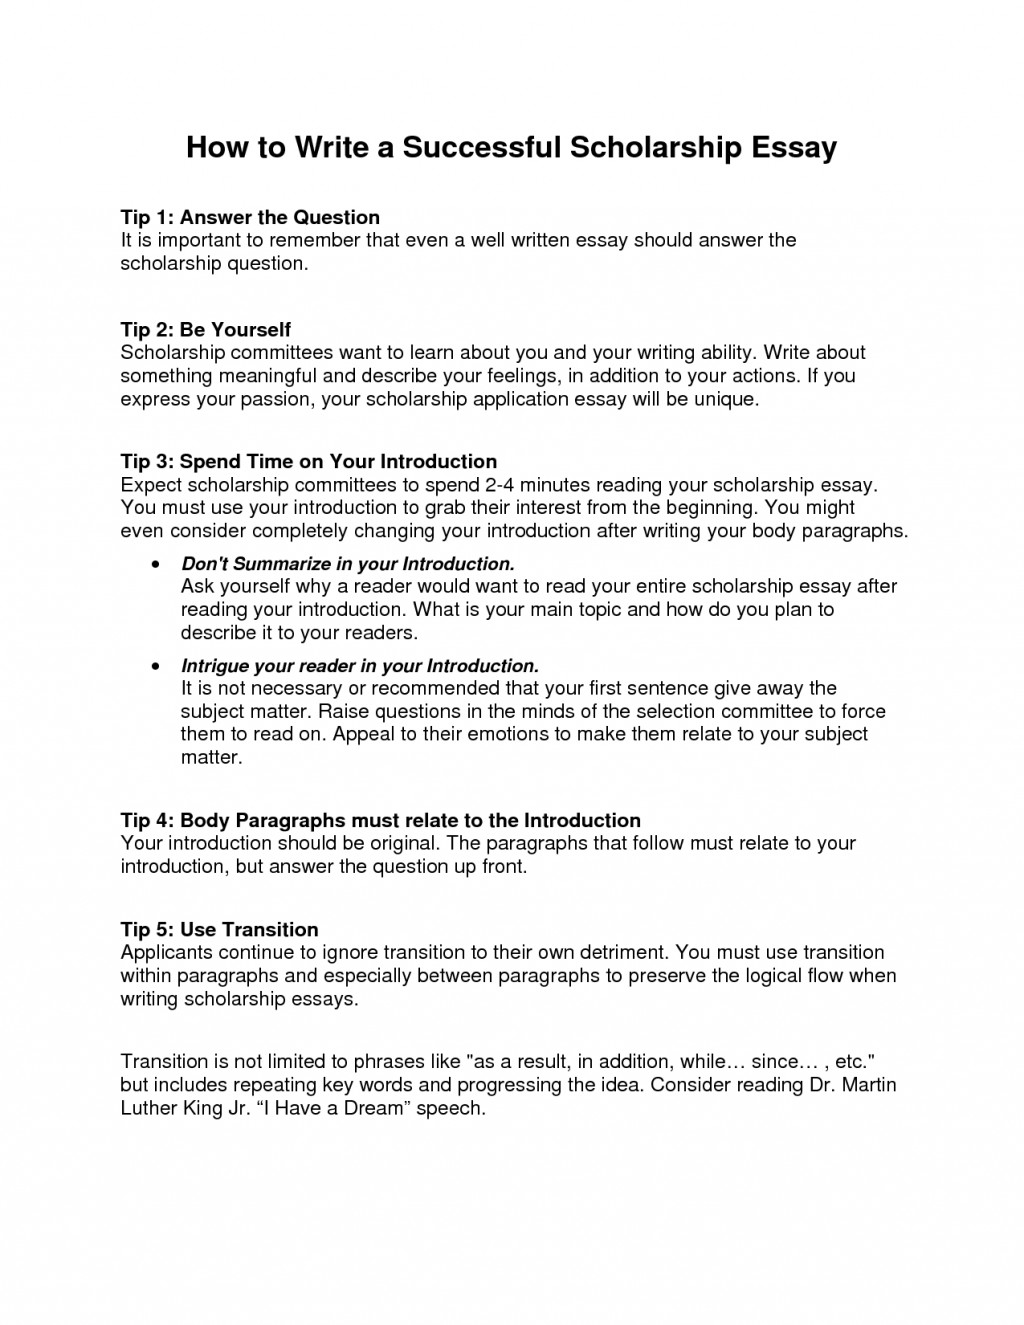 007 How To Write And Essay Example Unique An Conclusion University Level Outline For College Placement Test Large